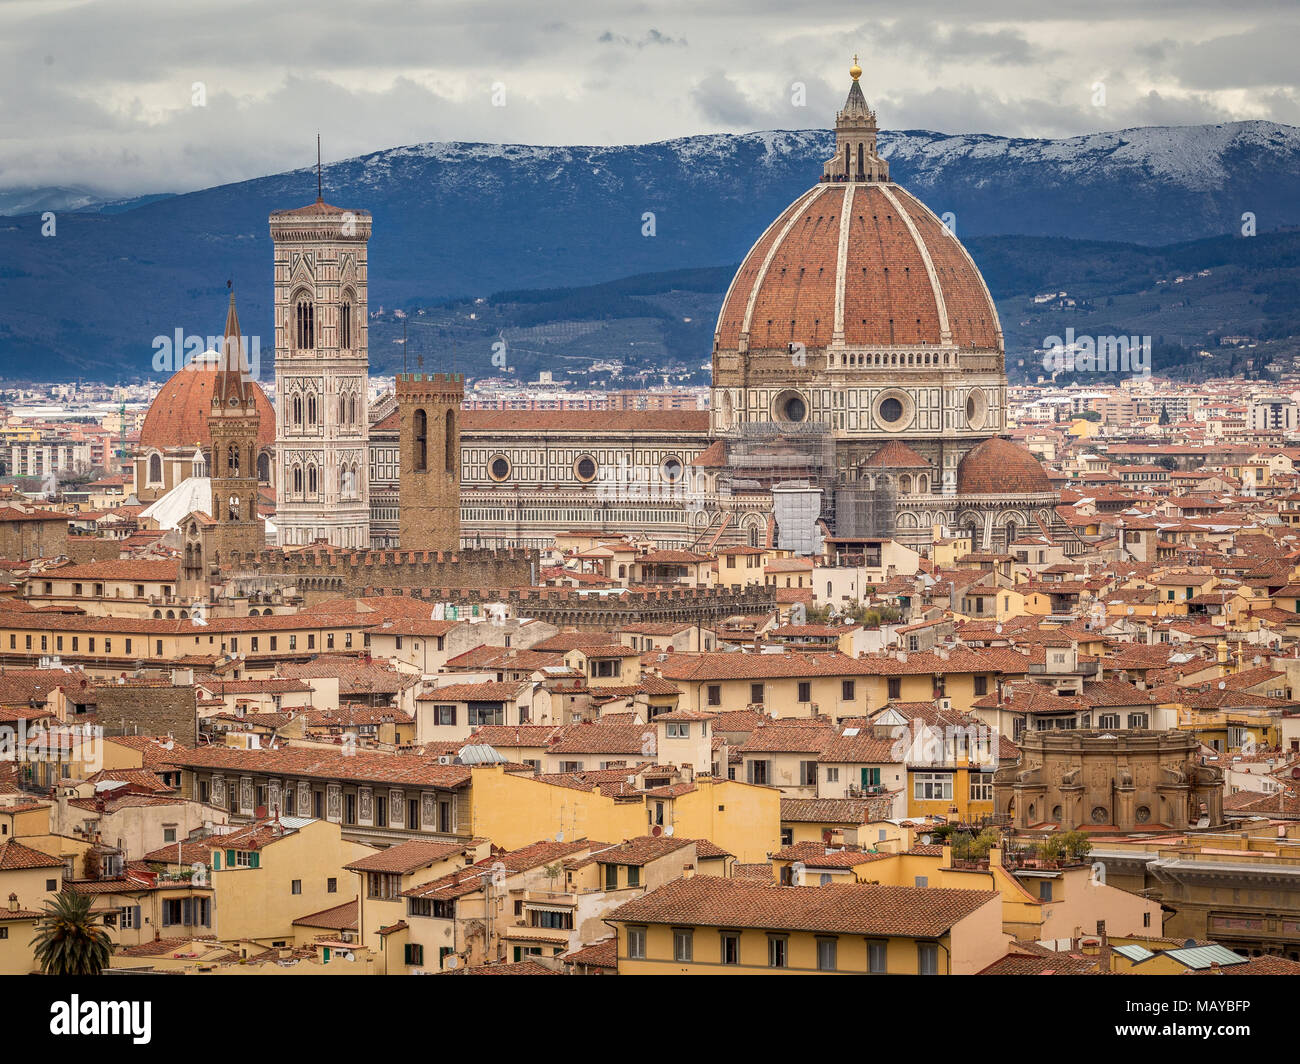 The Cattedrale di Santa Maria del Fiore. Florence, Italy, cathedral. In background there are mountains in the snow - Stock Image